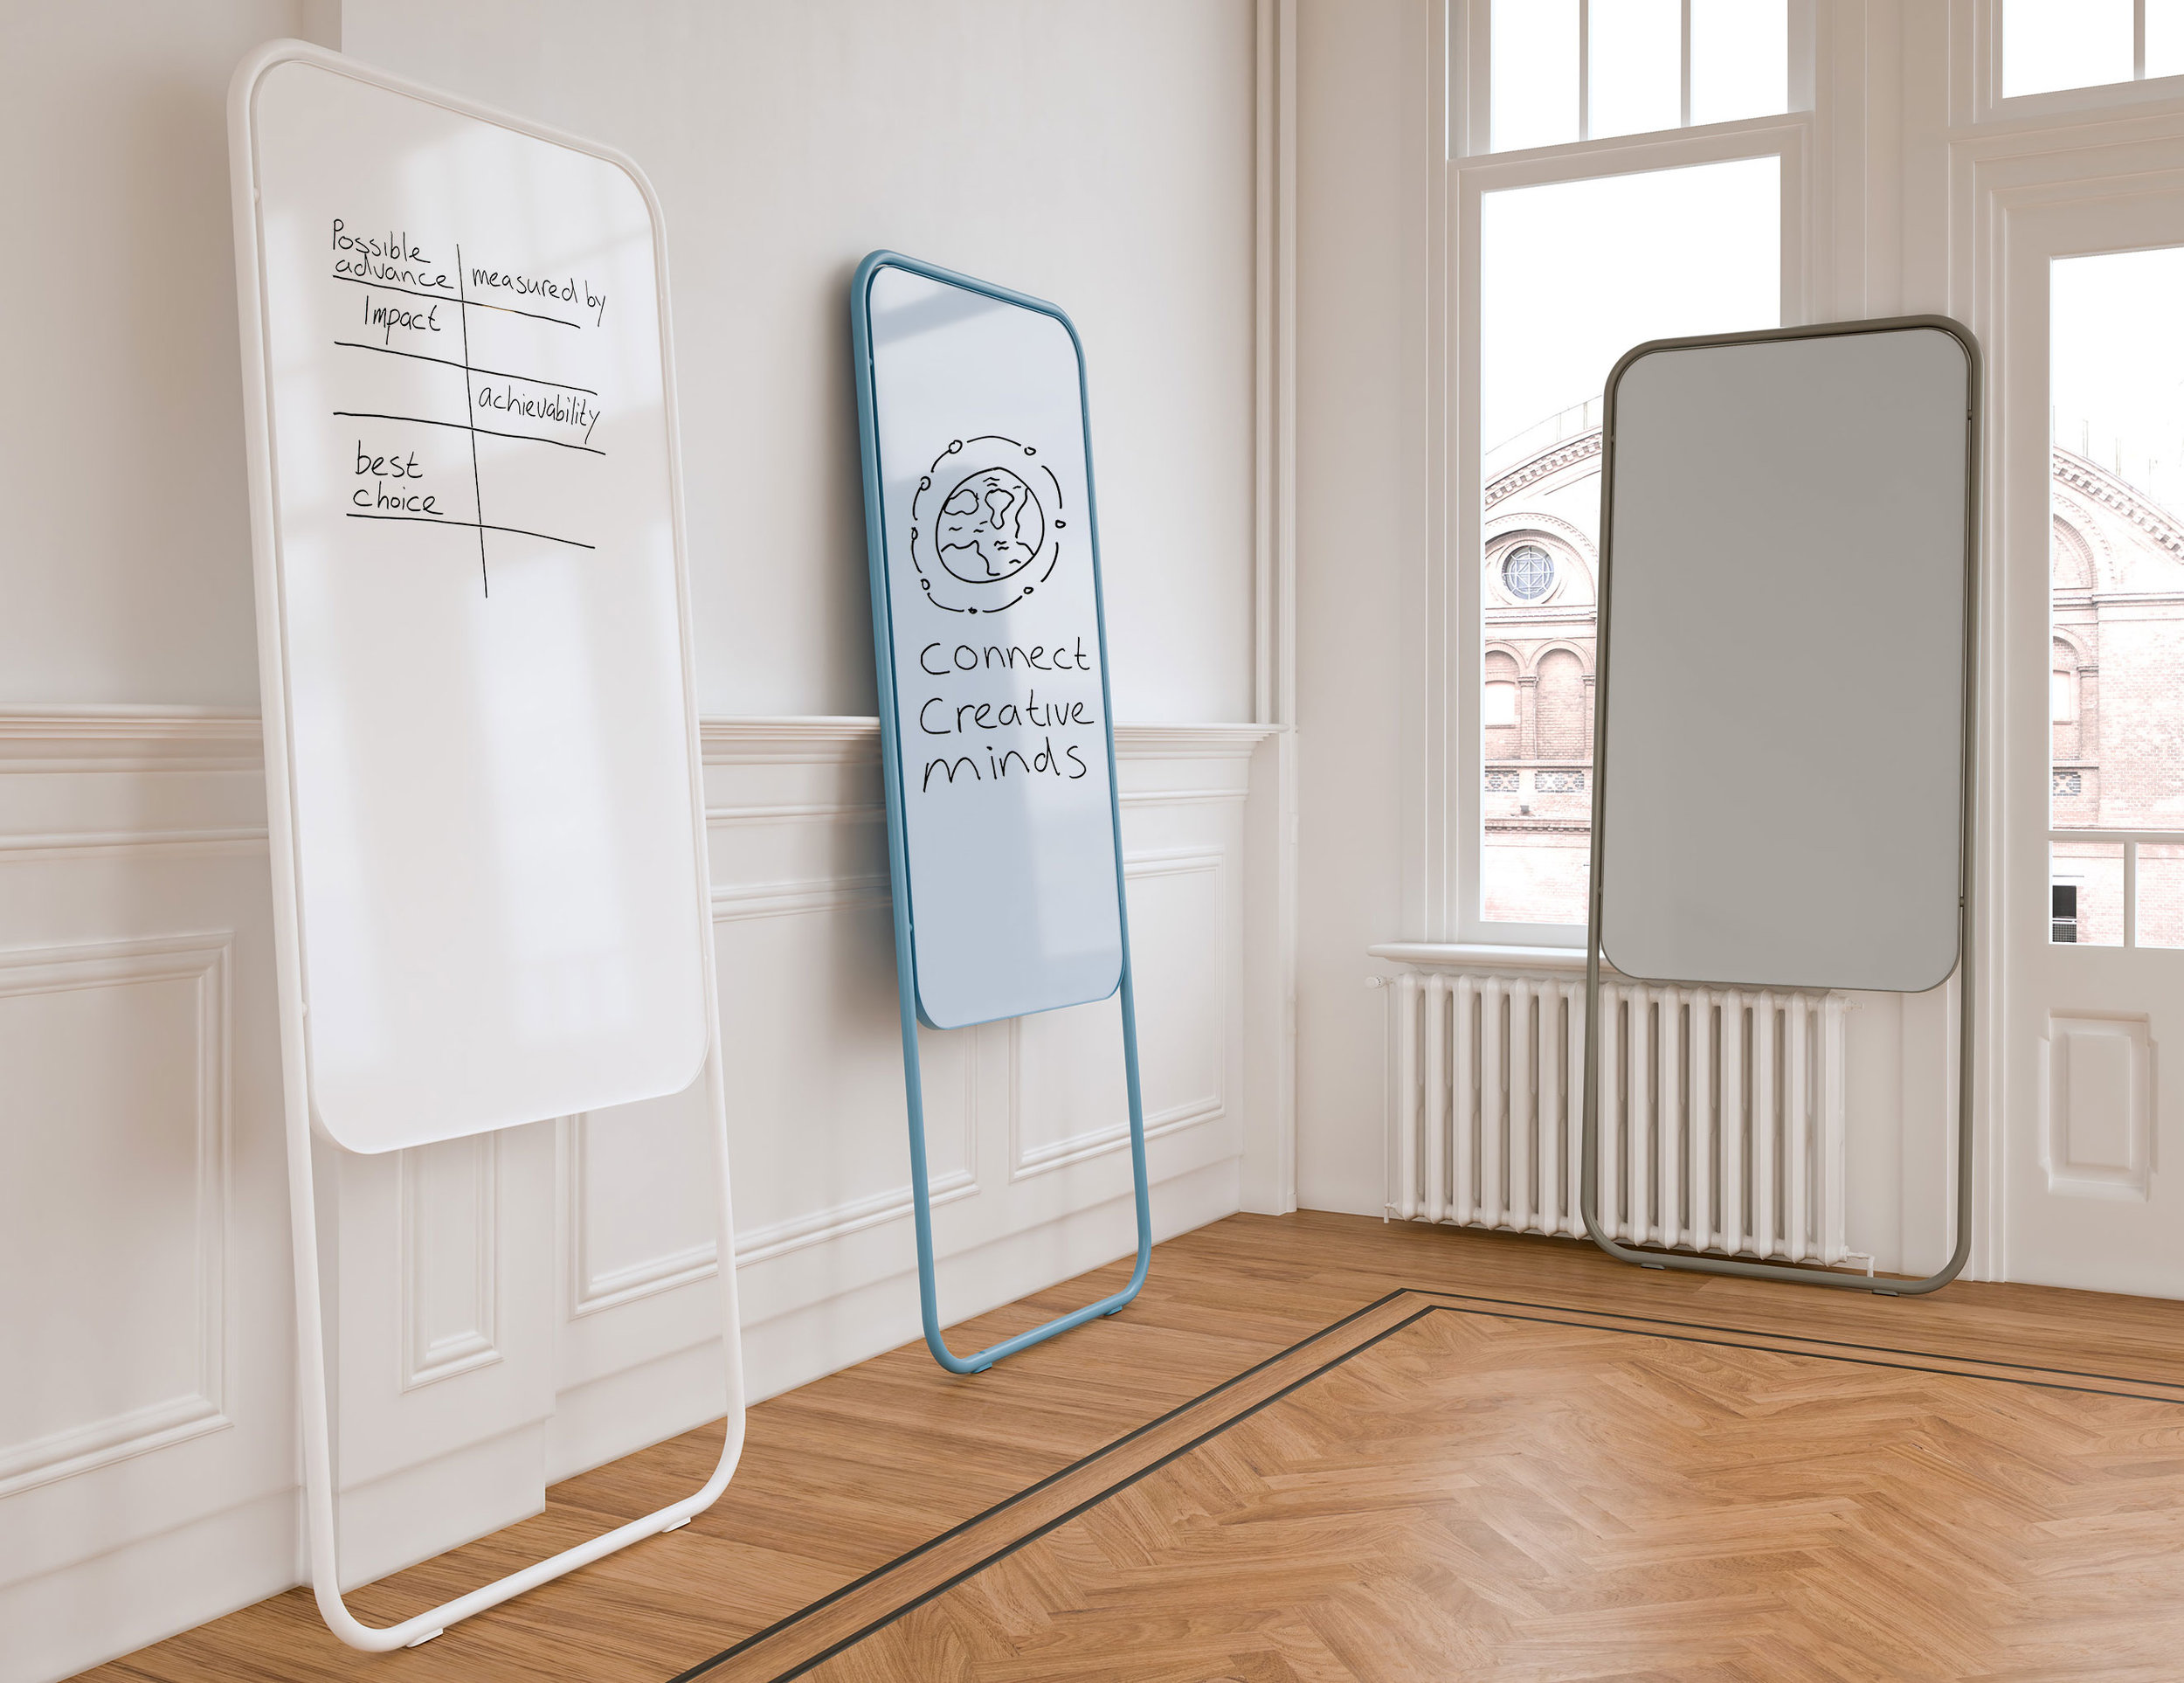 Chameleon Momentum - For many organisations, spontaneous consultations are the basis for streamlined communication. Most importantly, the best ideas emerge from the resulting creative flow. Therefore, Chameleon Momentum is the go-to movable whiteboard for recording these results.